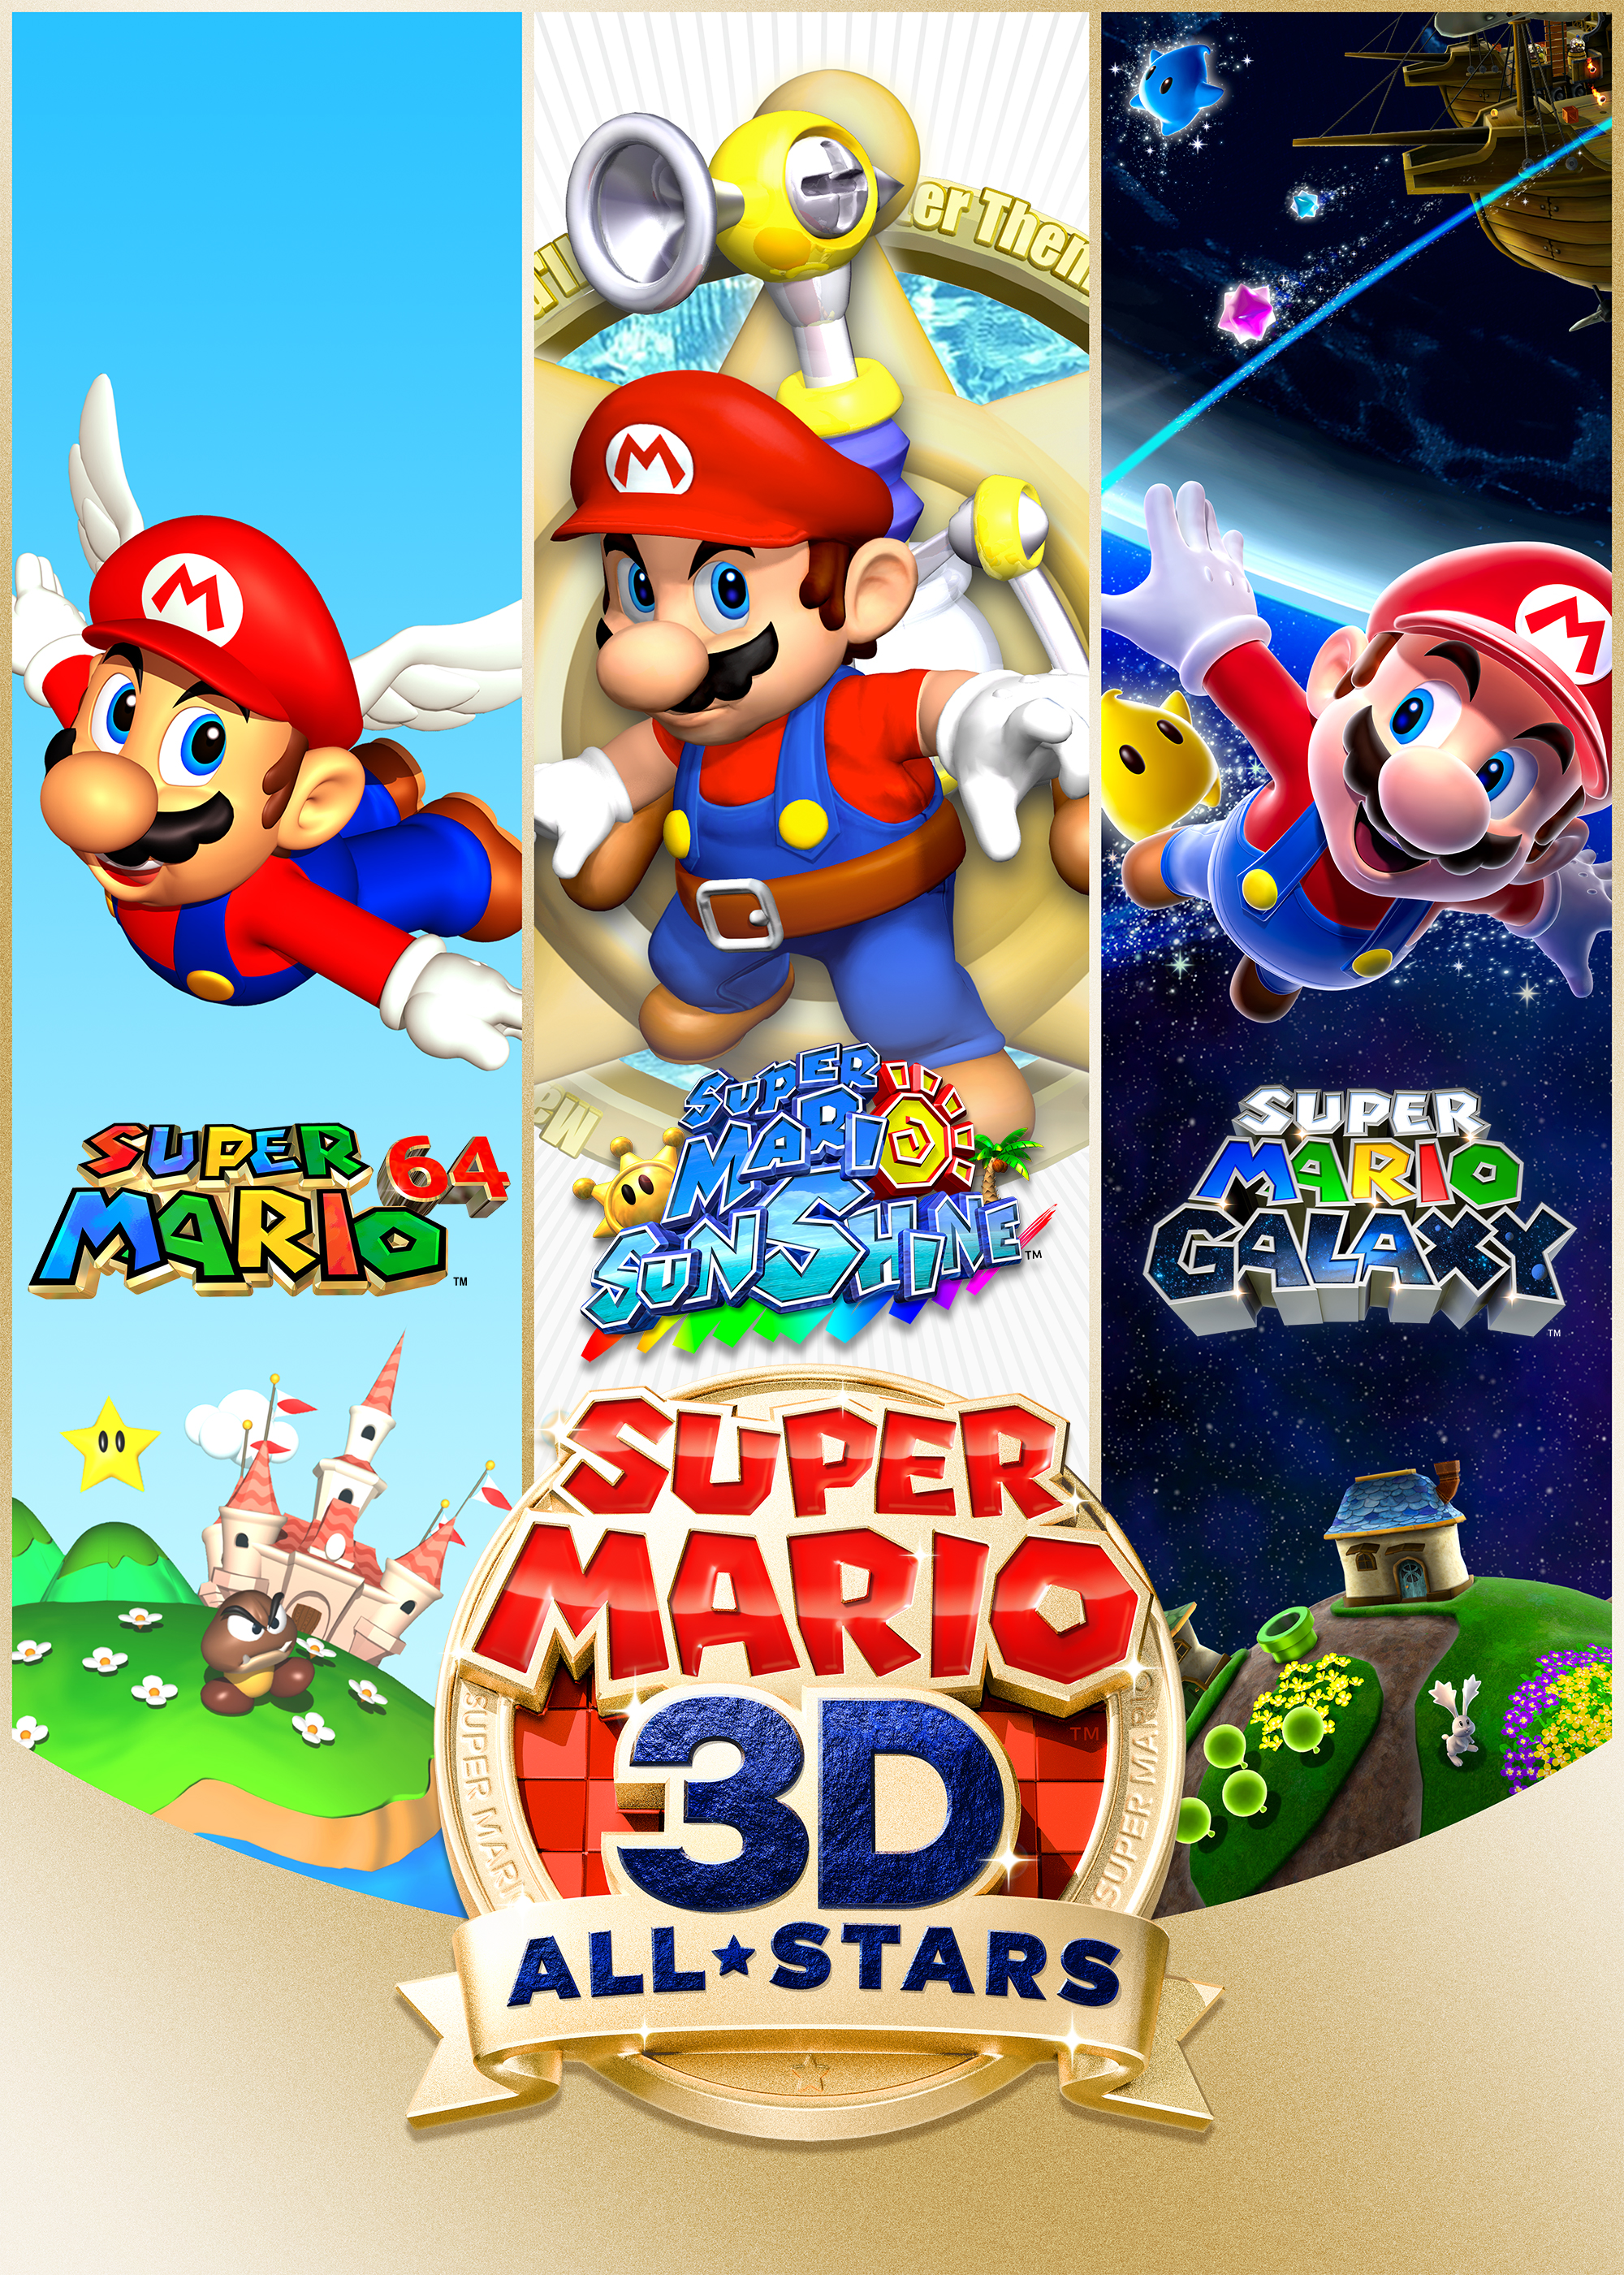 Super Mario 3D All-Stars for Nintendo Switch Image